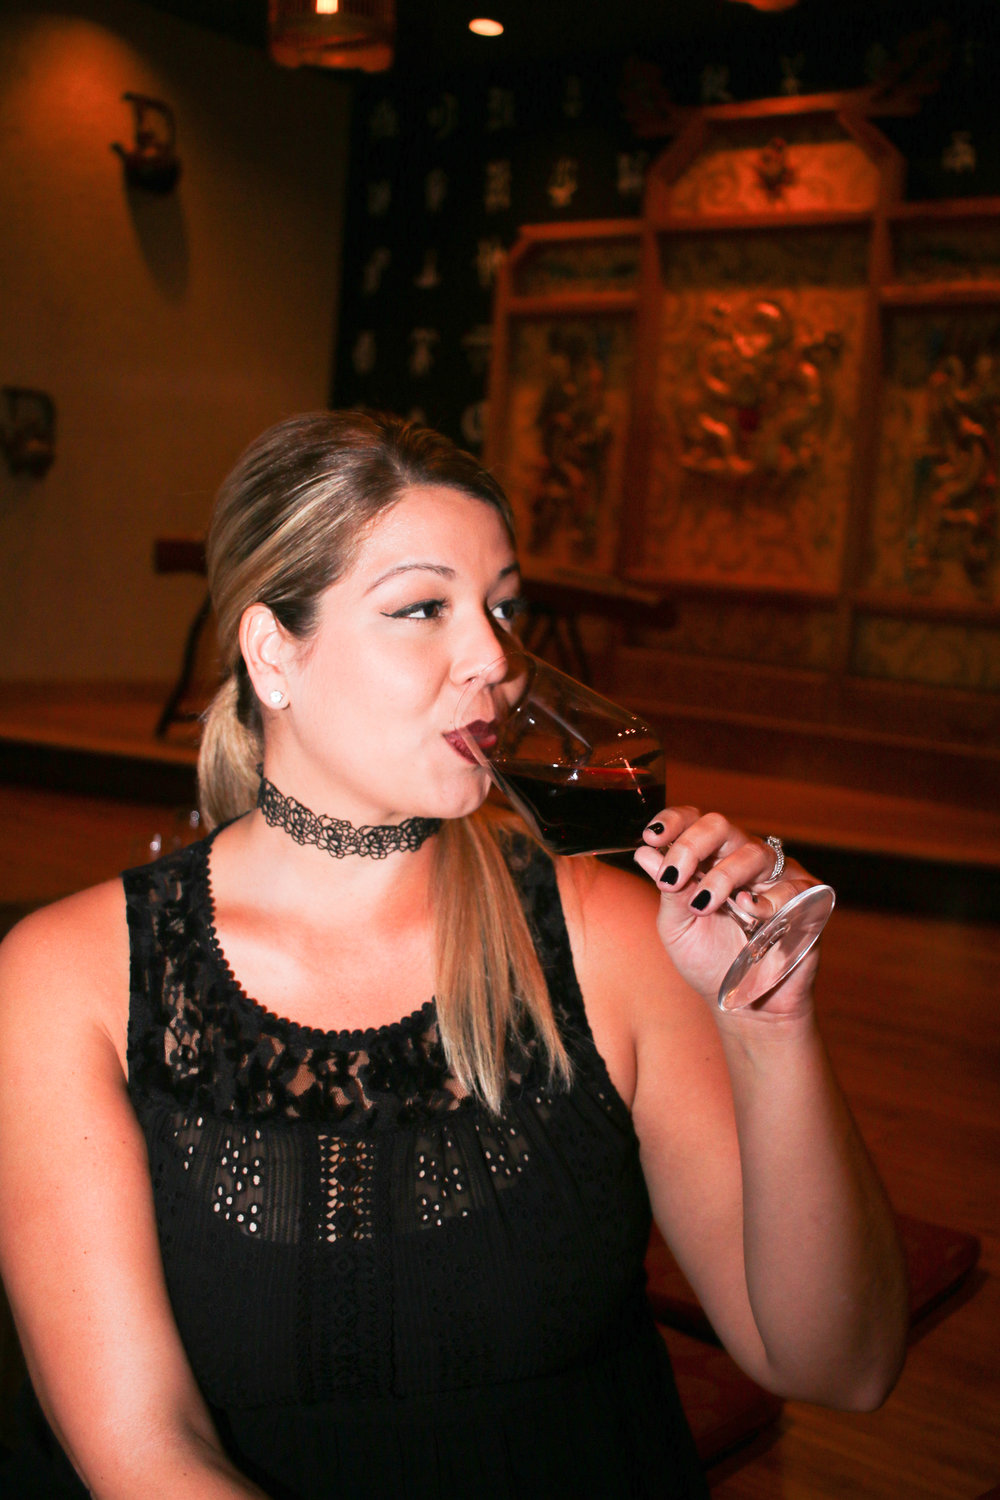 Miami Wine Lovers - Wine Blogger - Miami Wine Events